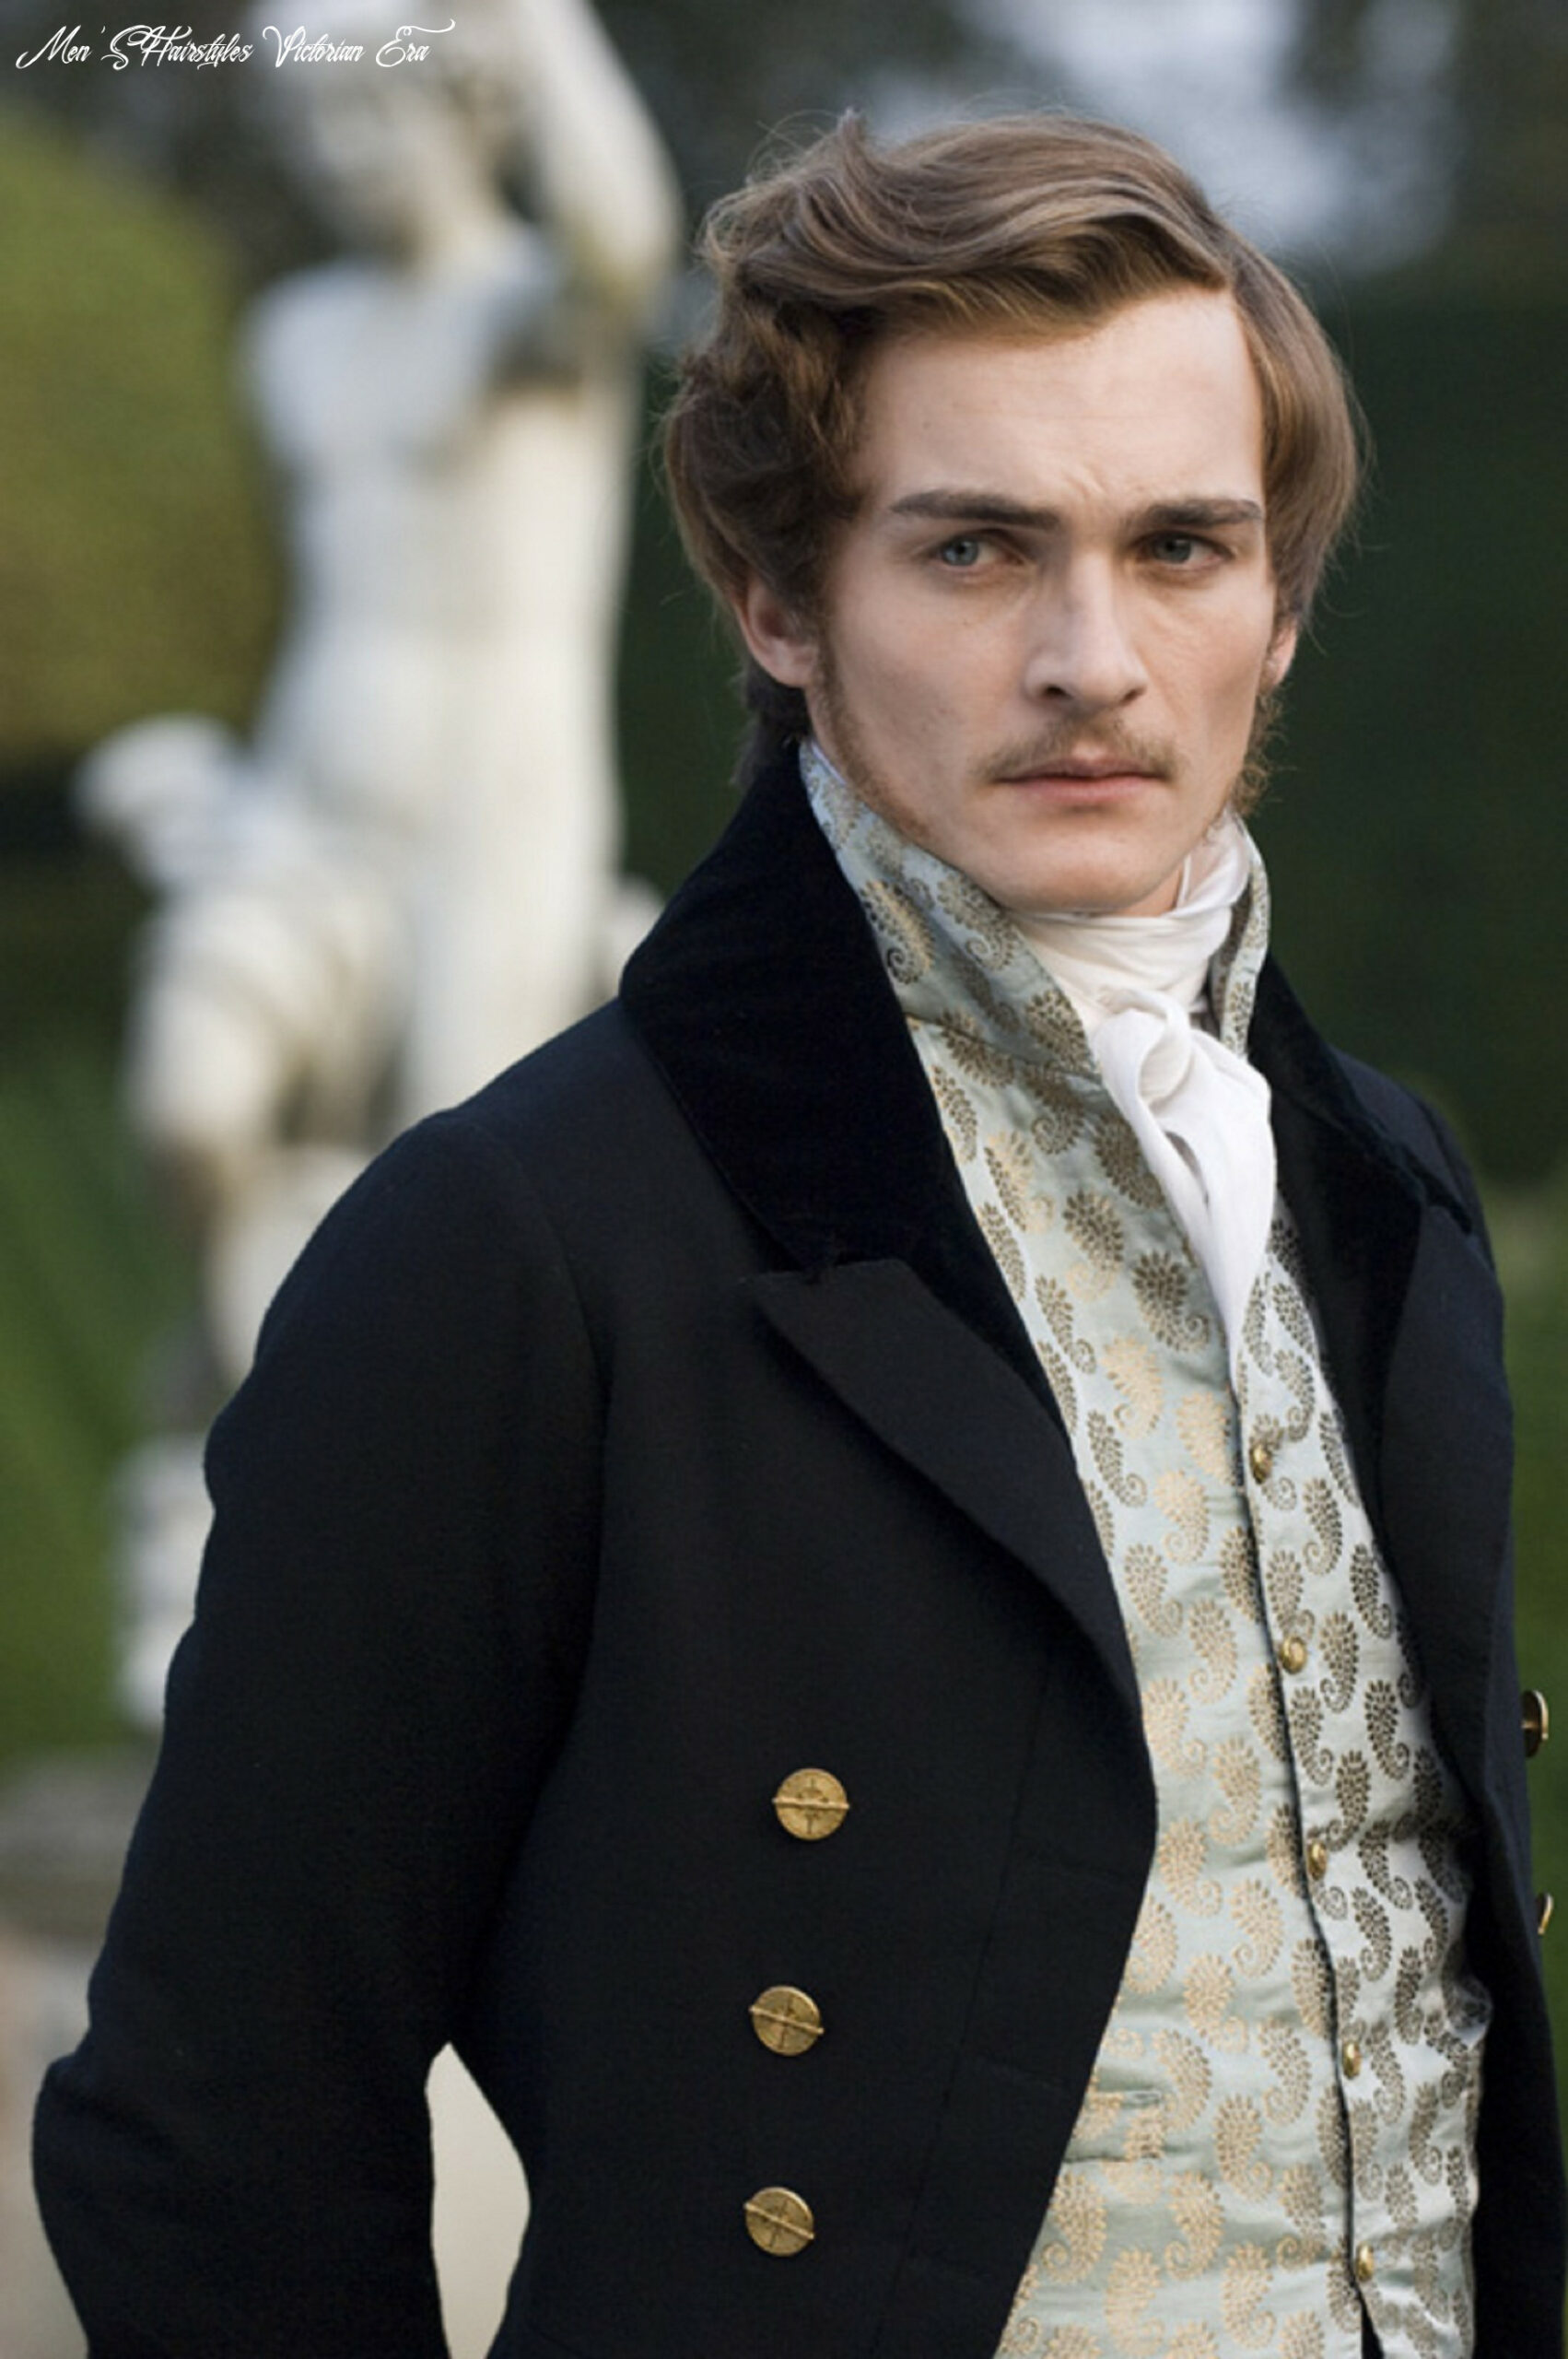 Victorian mens clothing styles | Modern Fashion Styles